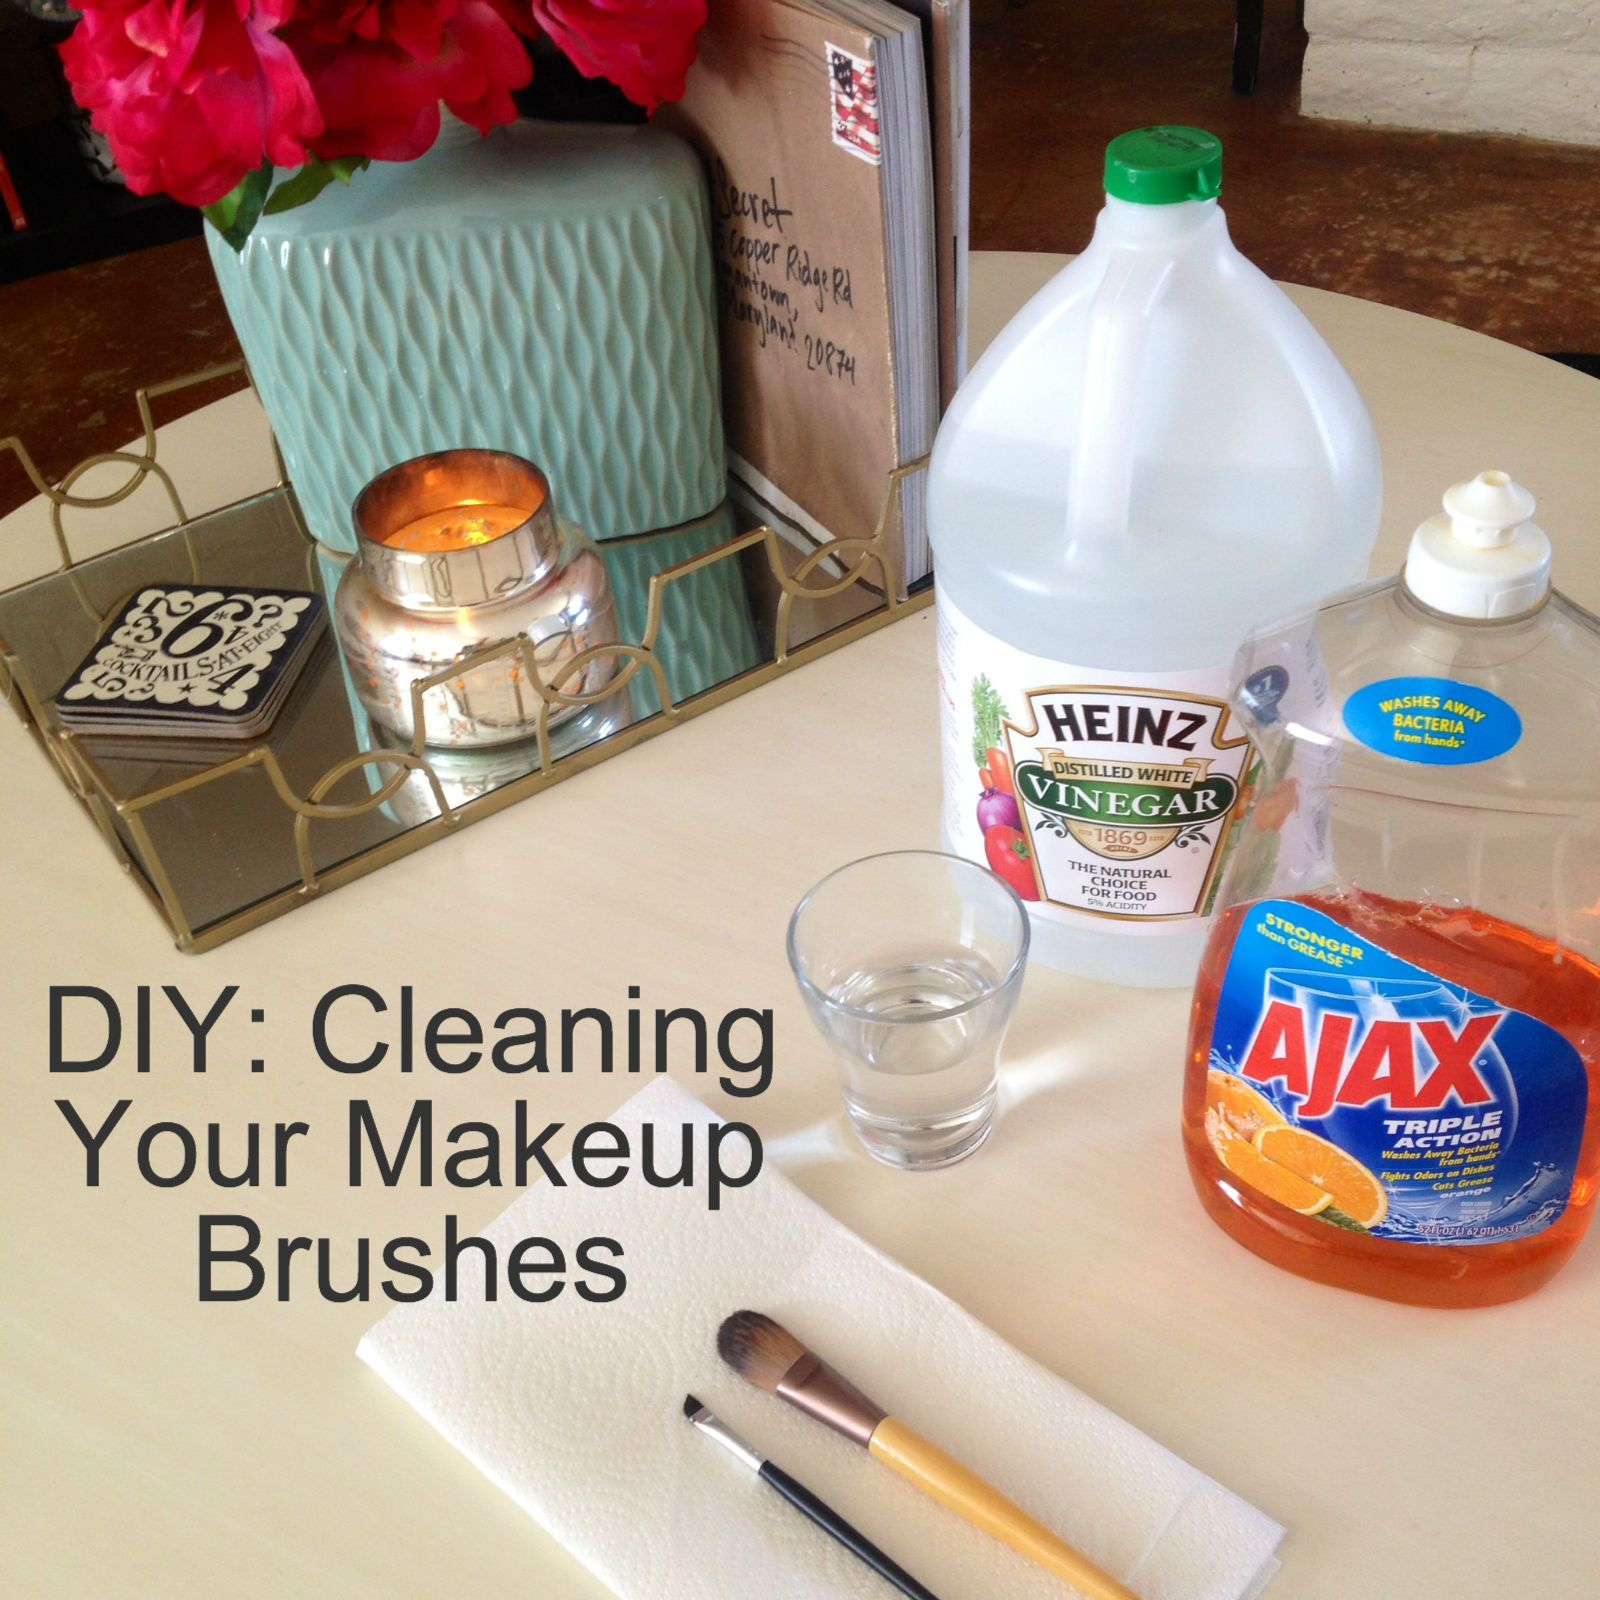 DIY Clean Your Makeup Brushes Makeup yourself, Cleaning